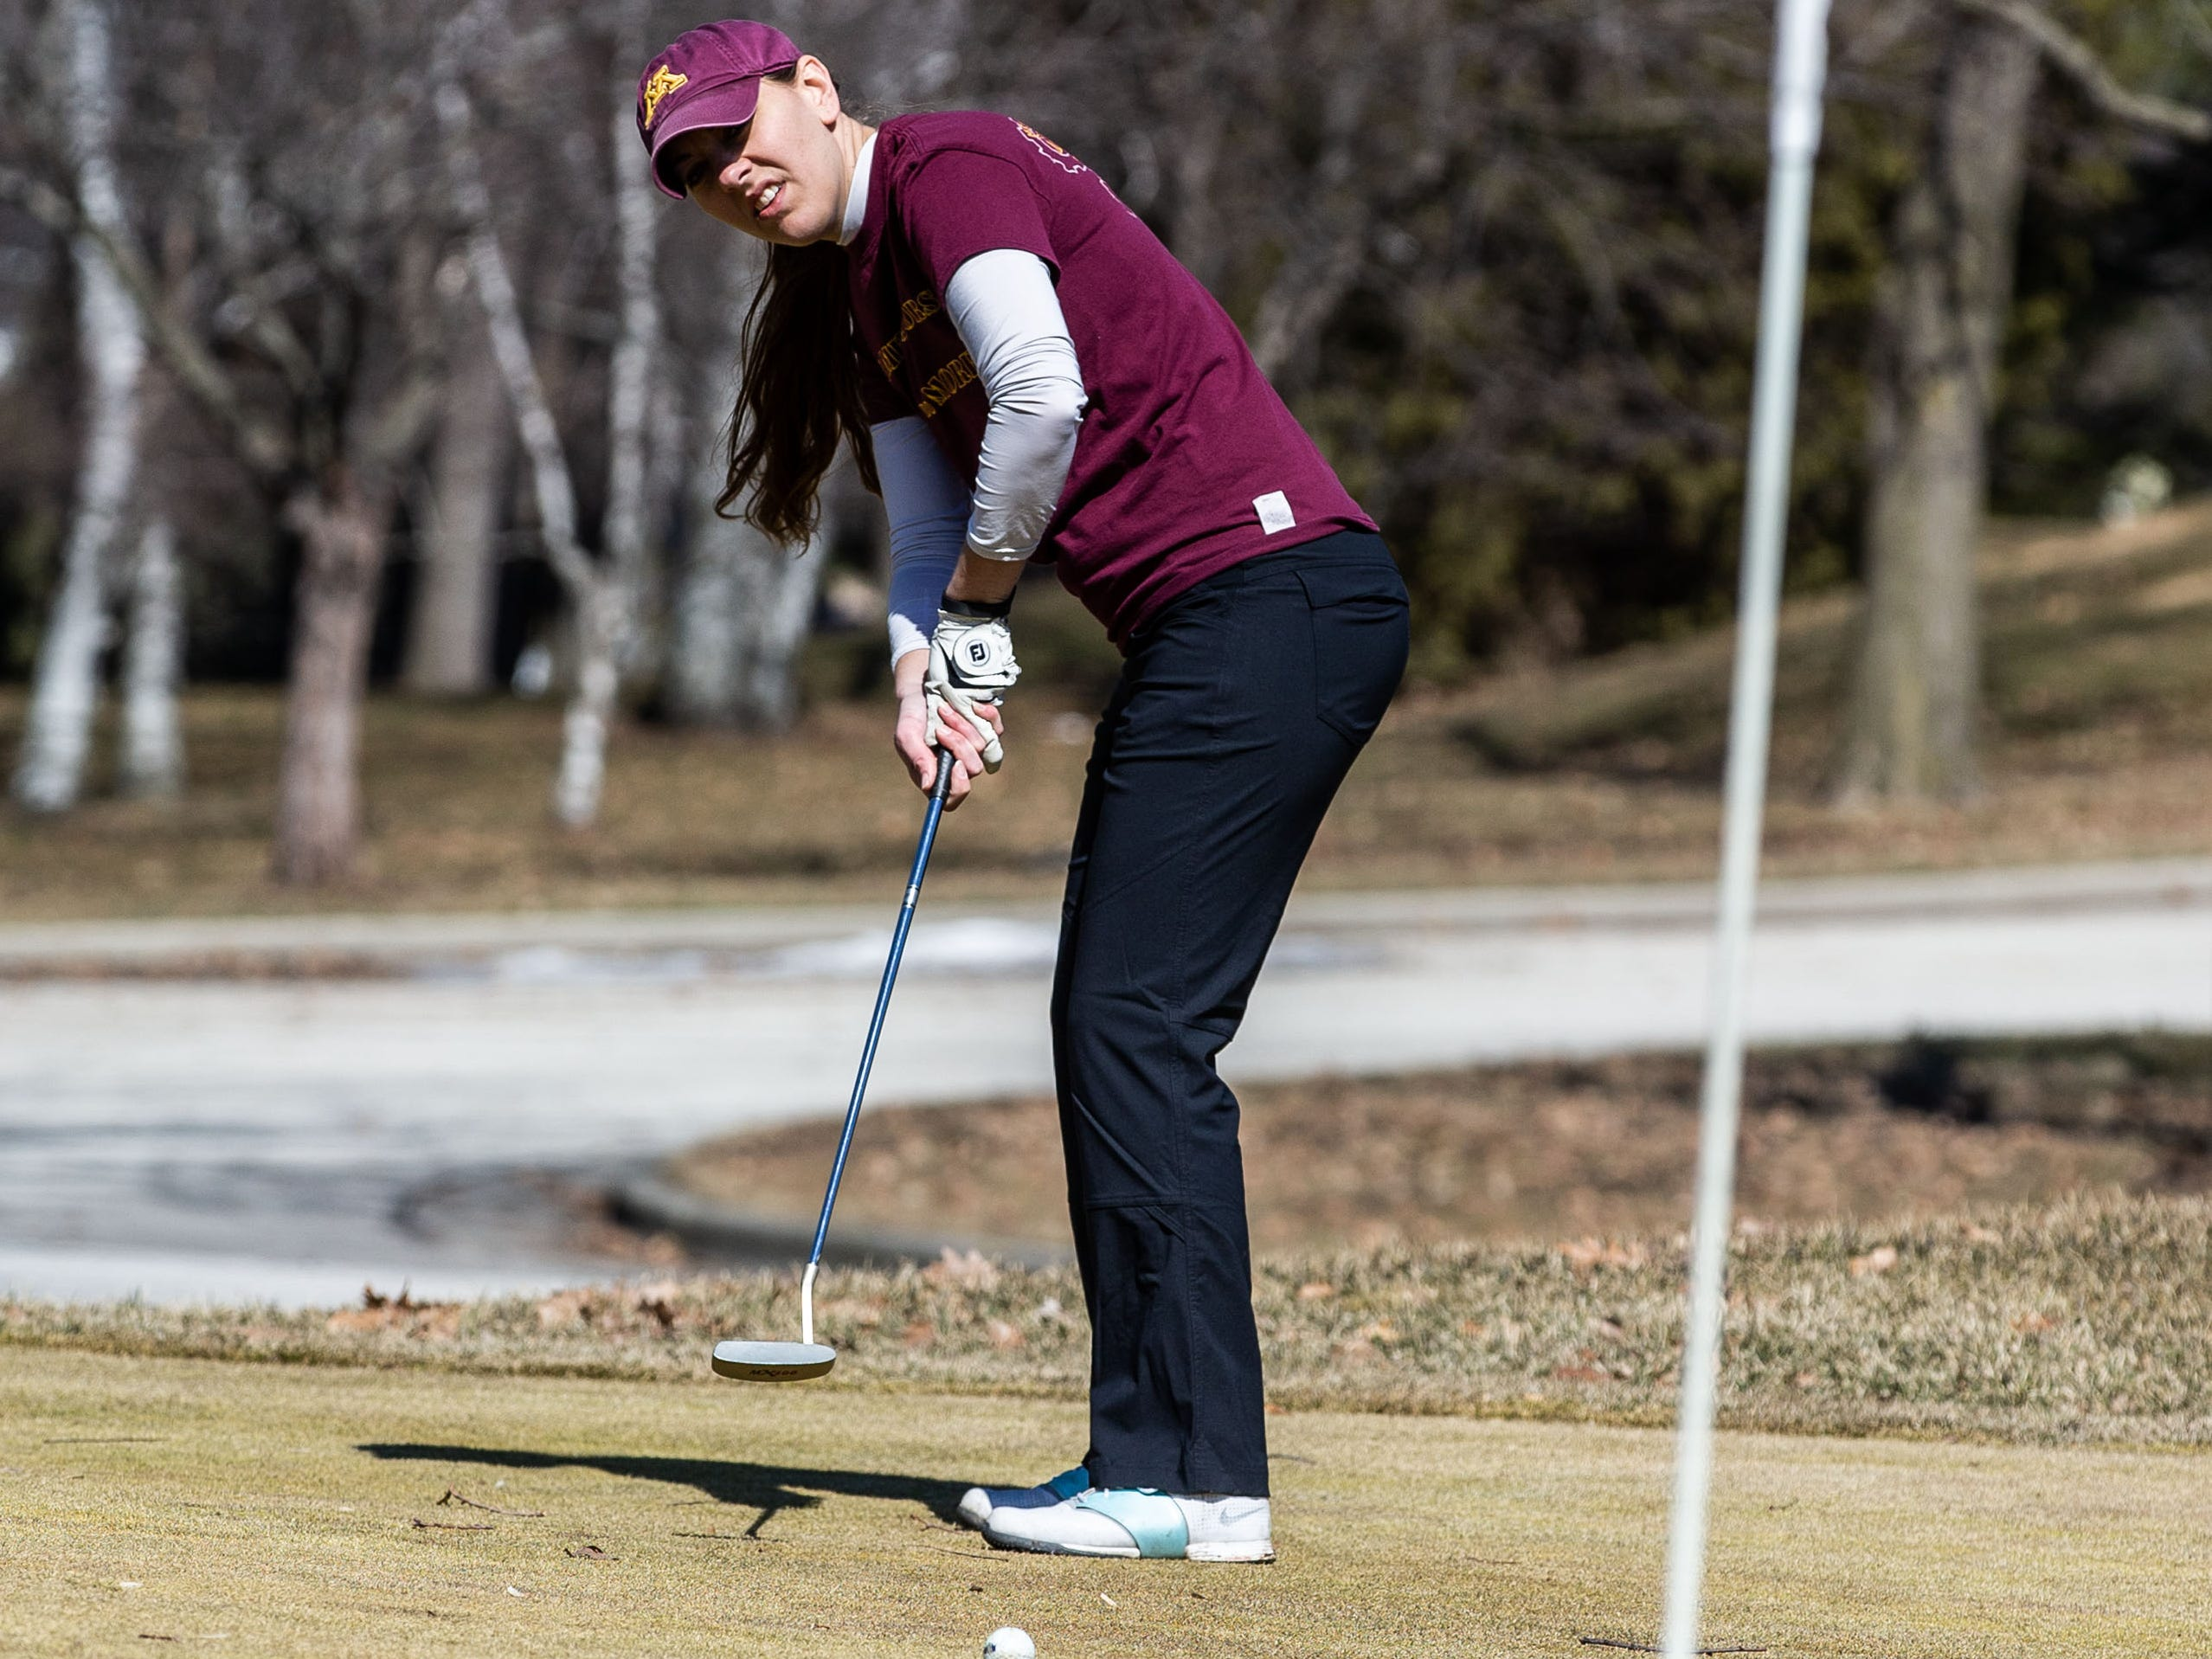 Andrea Gillman of New Berlin plays a round at Greenfield Park Golf Course on Saturday, March 23, 2019. Warm sunny weather lured many enthusiasts outside to enjoy the game.